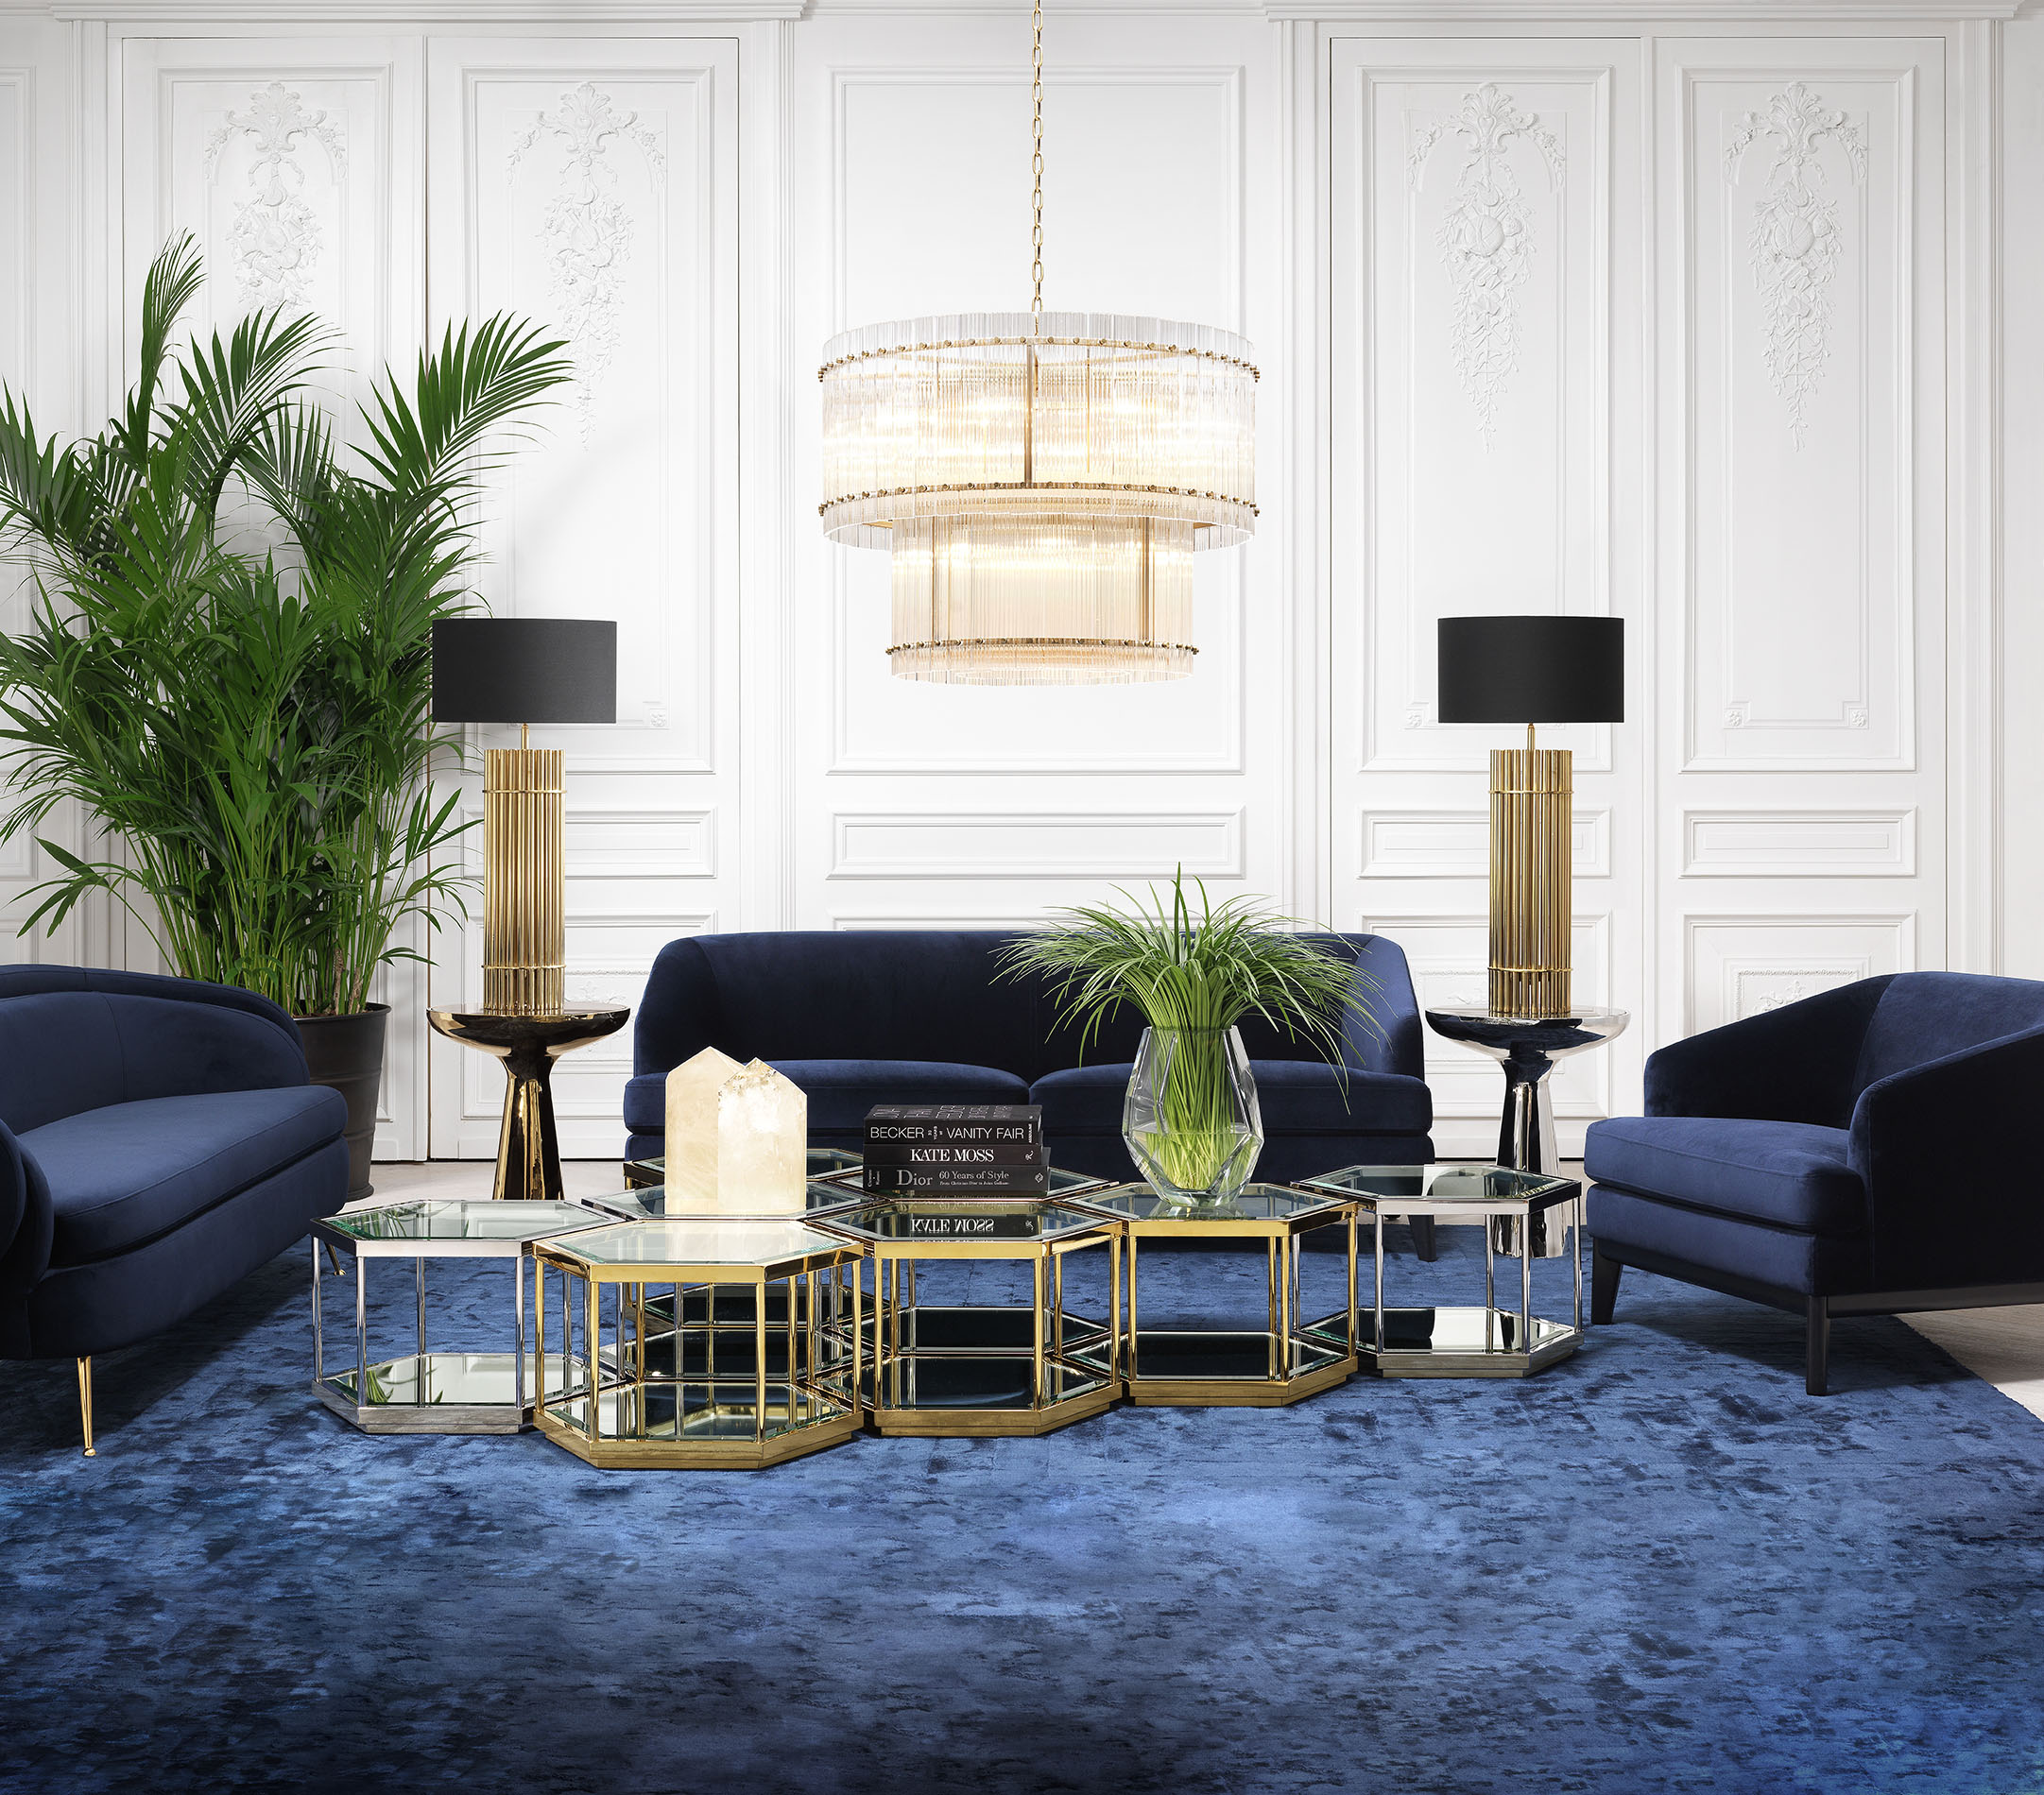 blue velvet living set armchairs and sofa with gold accessories, gold high lamps stand with black hats, blue velvet sofa with black legs, gold and silver modern coffee tables, trapezakia kentrika asimenia kai xrisa, mple veloudini kanapes me karekla me ma